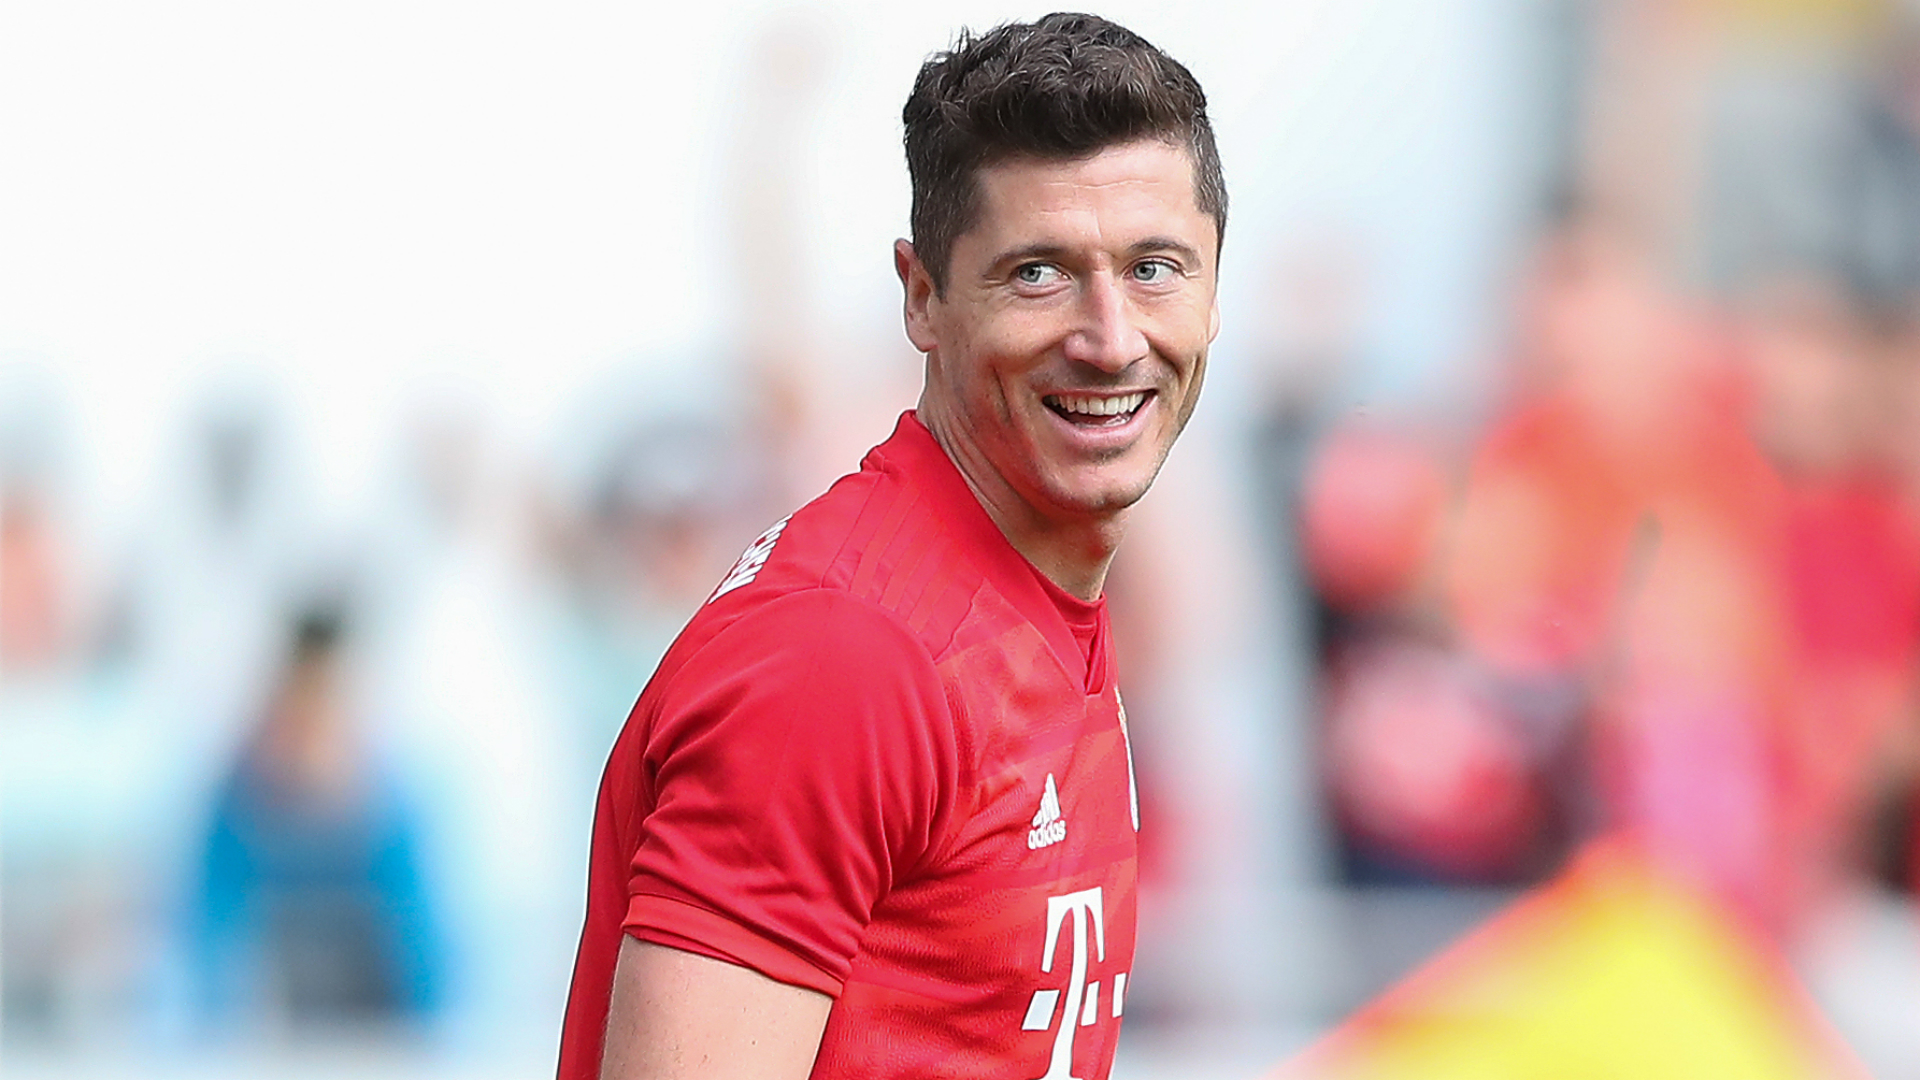 Lewandowski could sign new Bayern deal, says Rummenigge